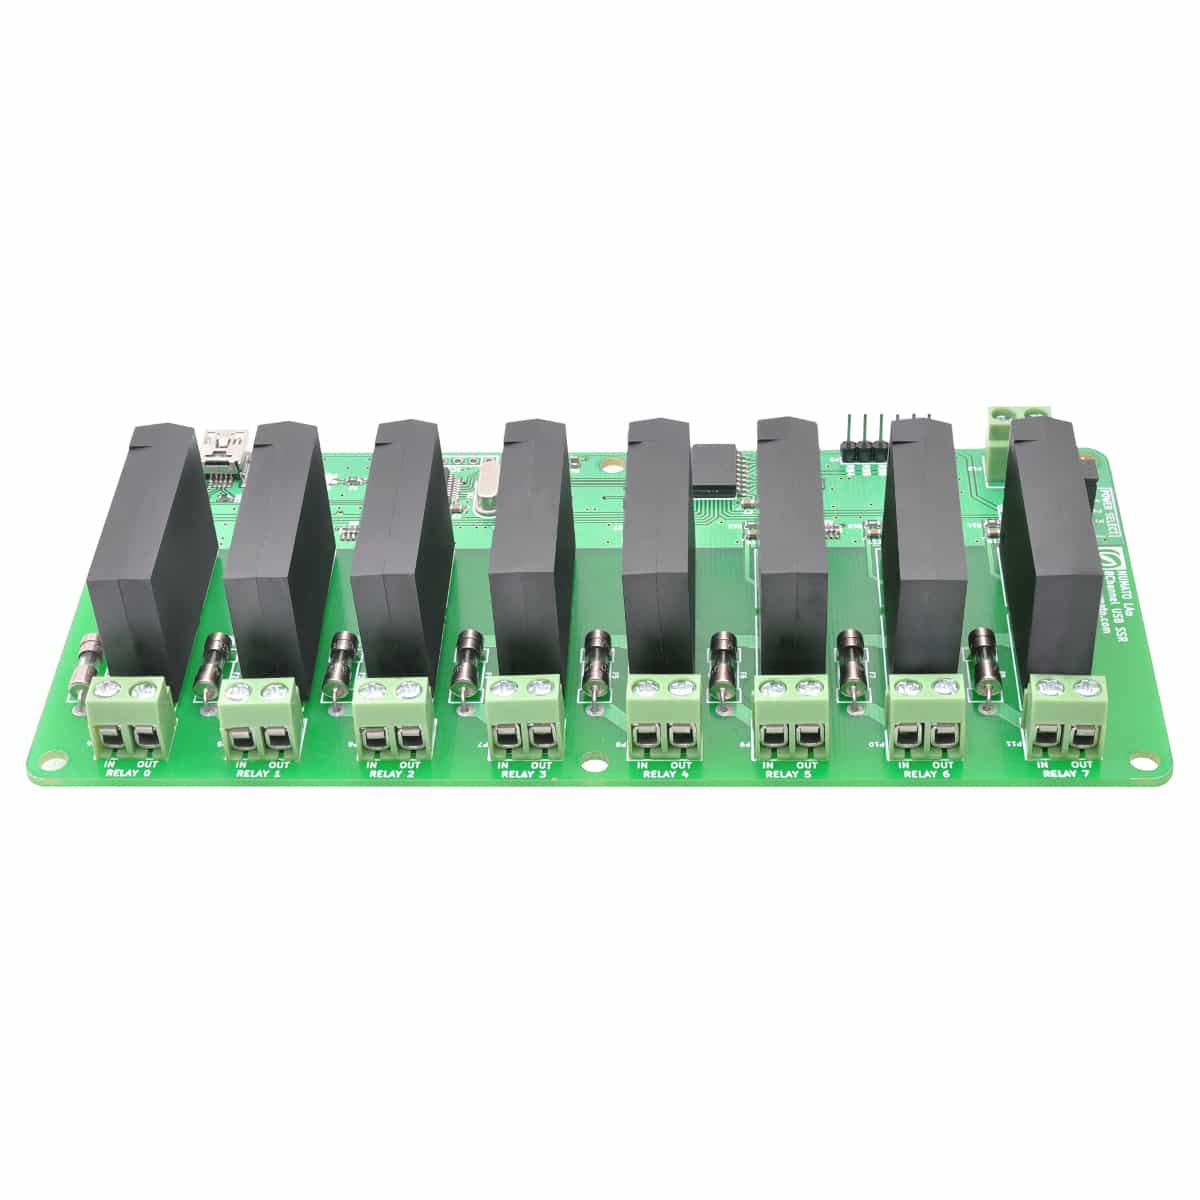 8 channel usb solid state relay module with gpio numato lab rh numato com Solid State Relay Wiring Diagram solid state relay usb control with enclosure